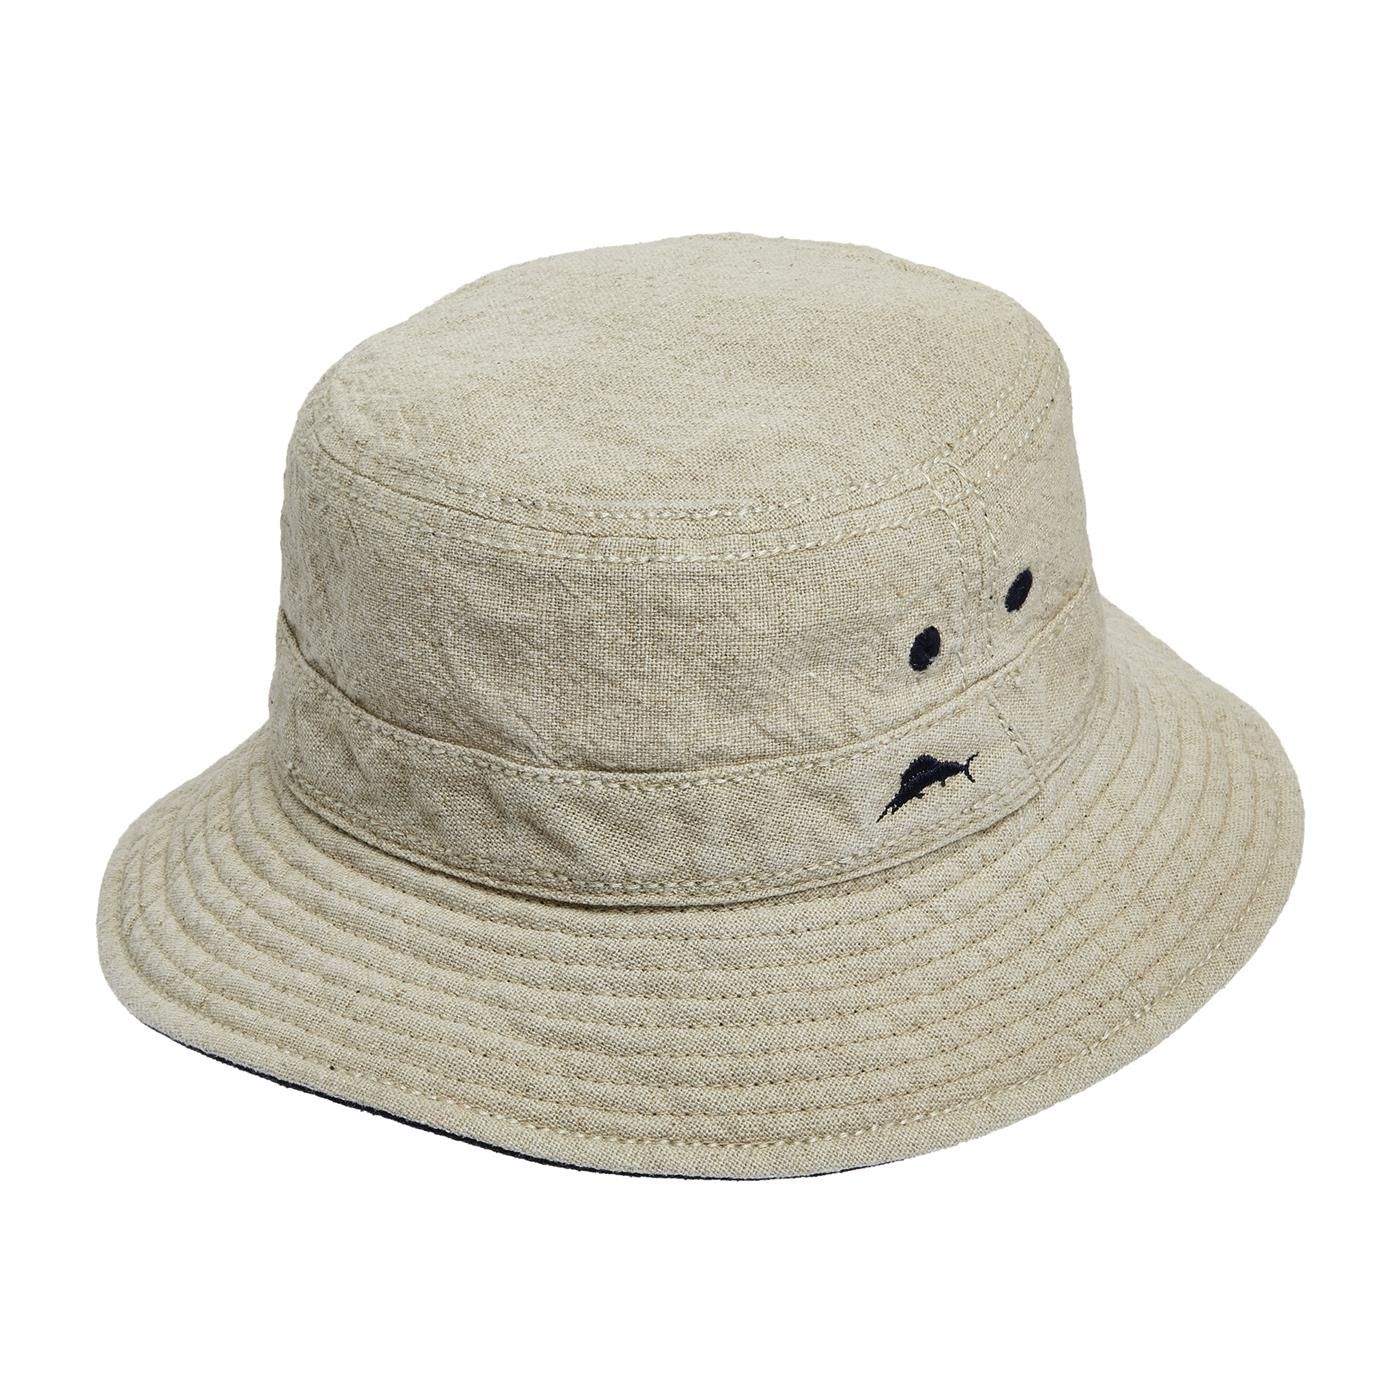 f2c85c35ea9 This classic bucket hat is a great addition to your summer outfit. Keep the  sun